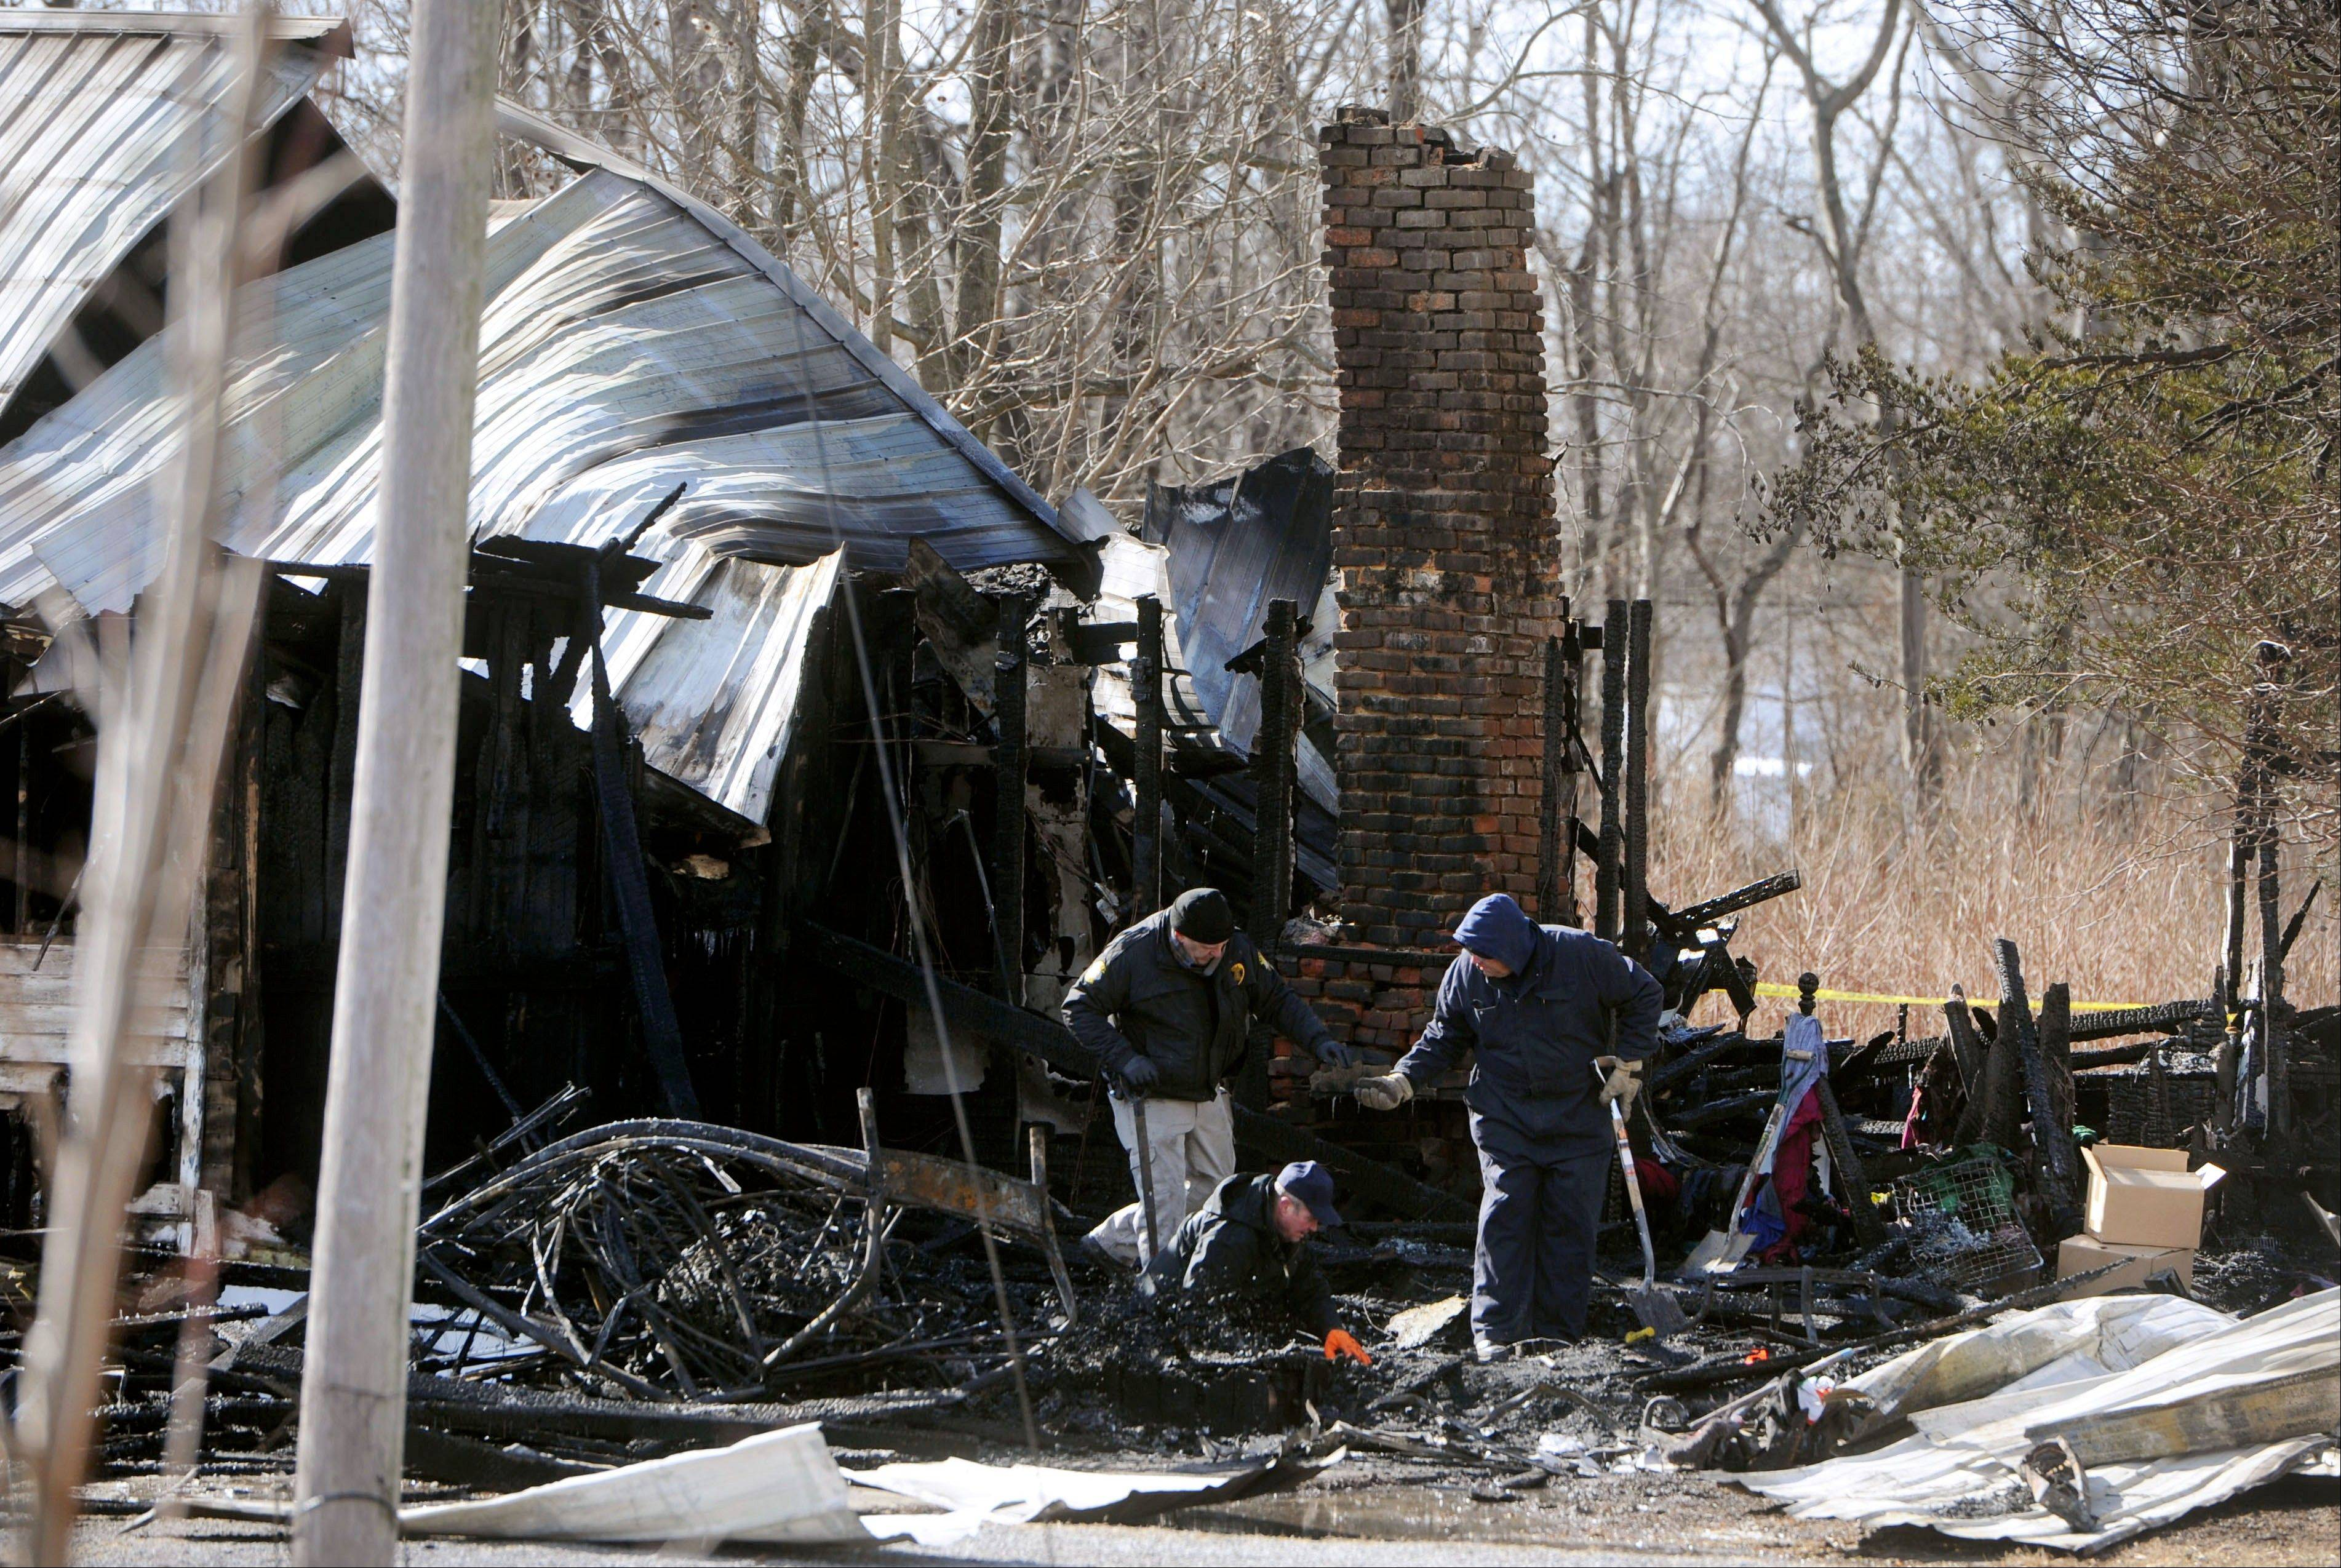 Alan Gregory, with the Kentucky Fire Marshal�s office, at bottom, digs through debris Thursday Jan. 30, 2014, from a house fire that killed nine members of an 11-member family.